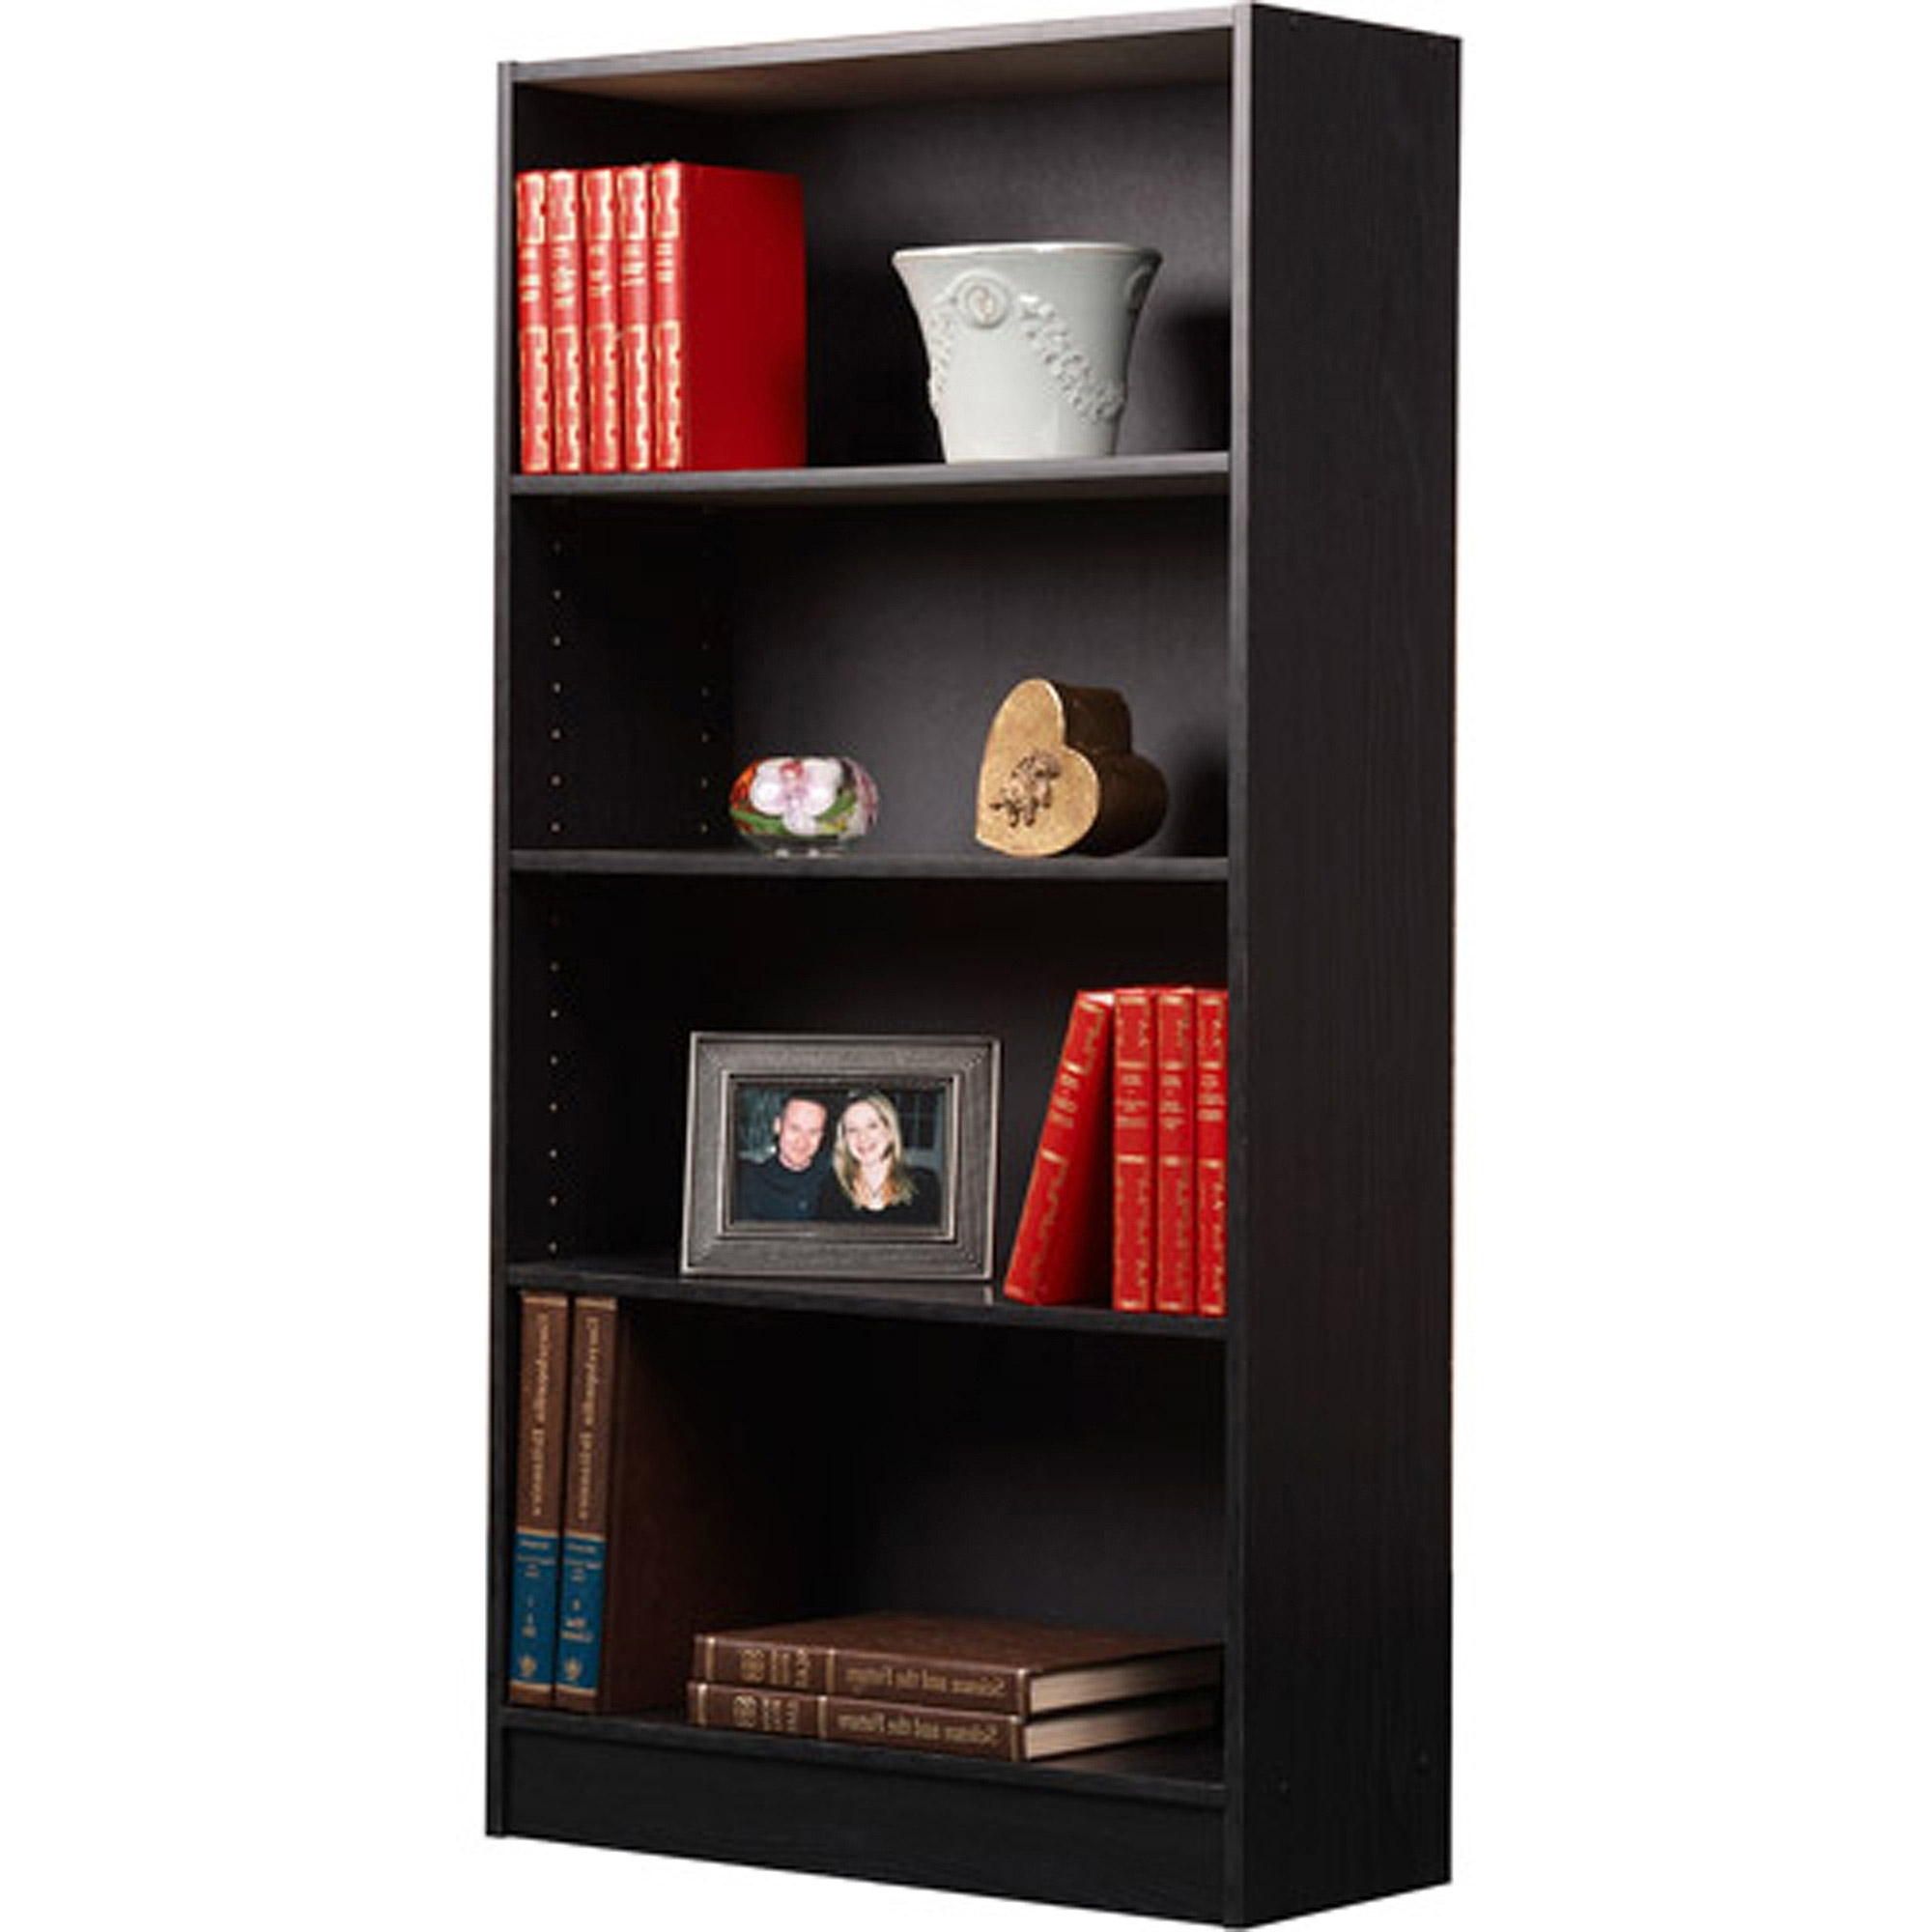 Famous All You Needed To Know About Choosing A Bookcase With Glass Doors Regarding Black Bookcases With Glass Doors (View 5 of 15)